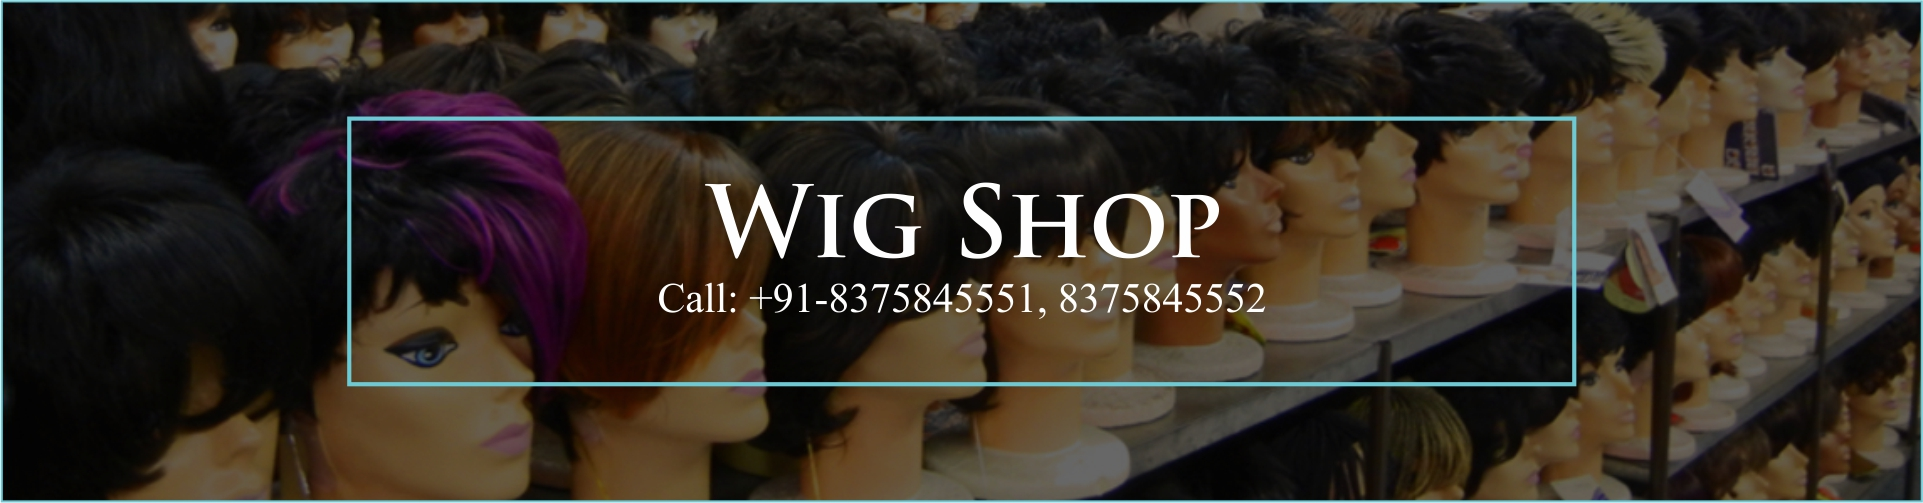 Wig Shop - PHC Hair Clinic